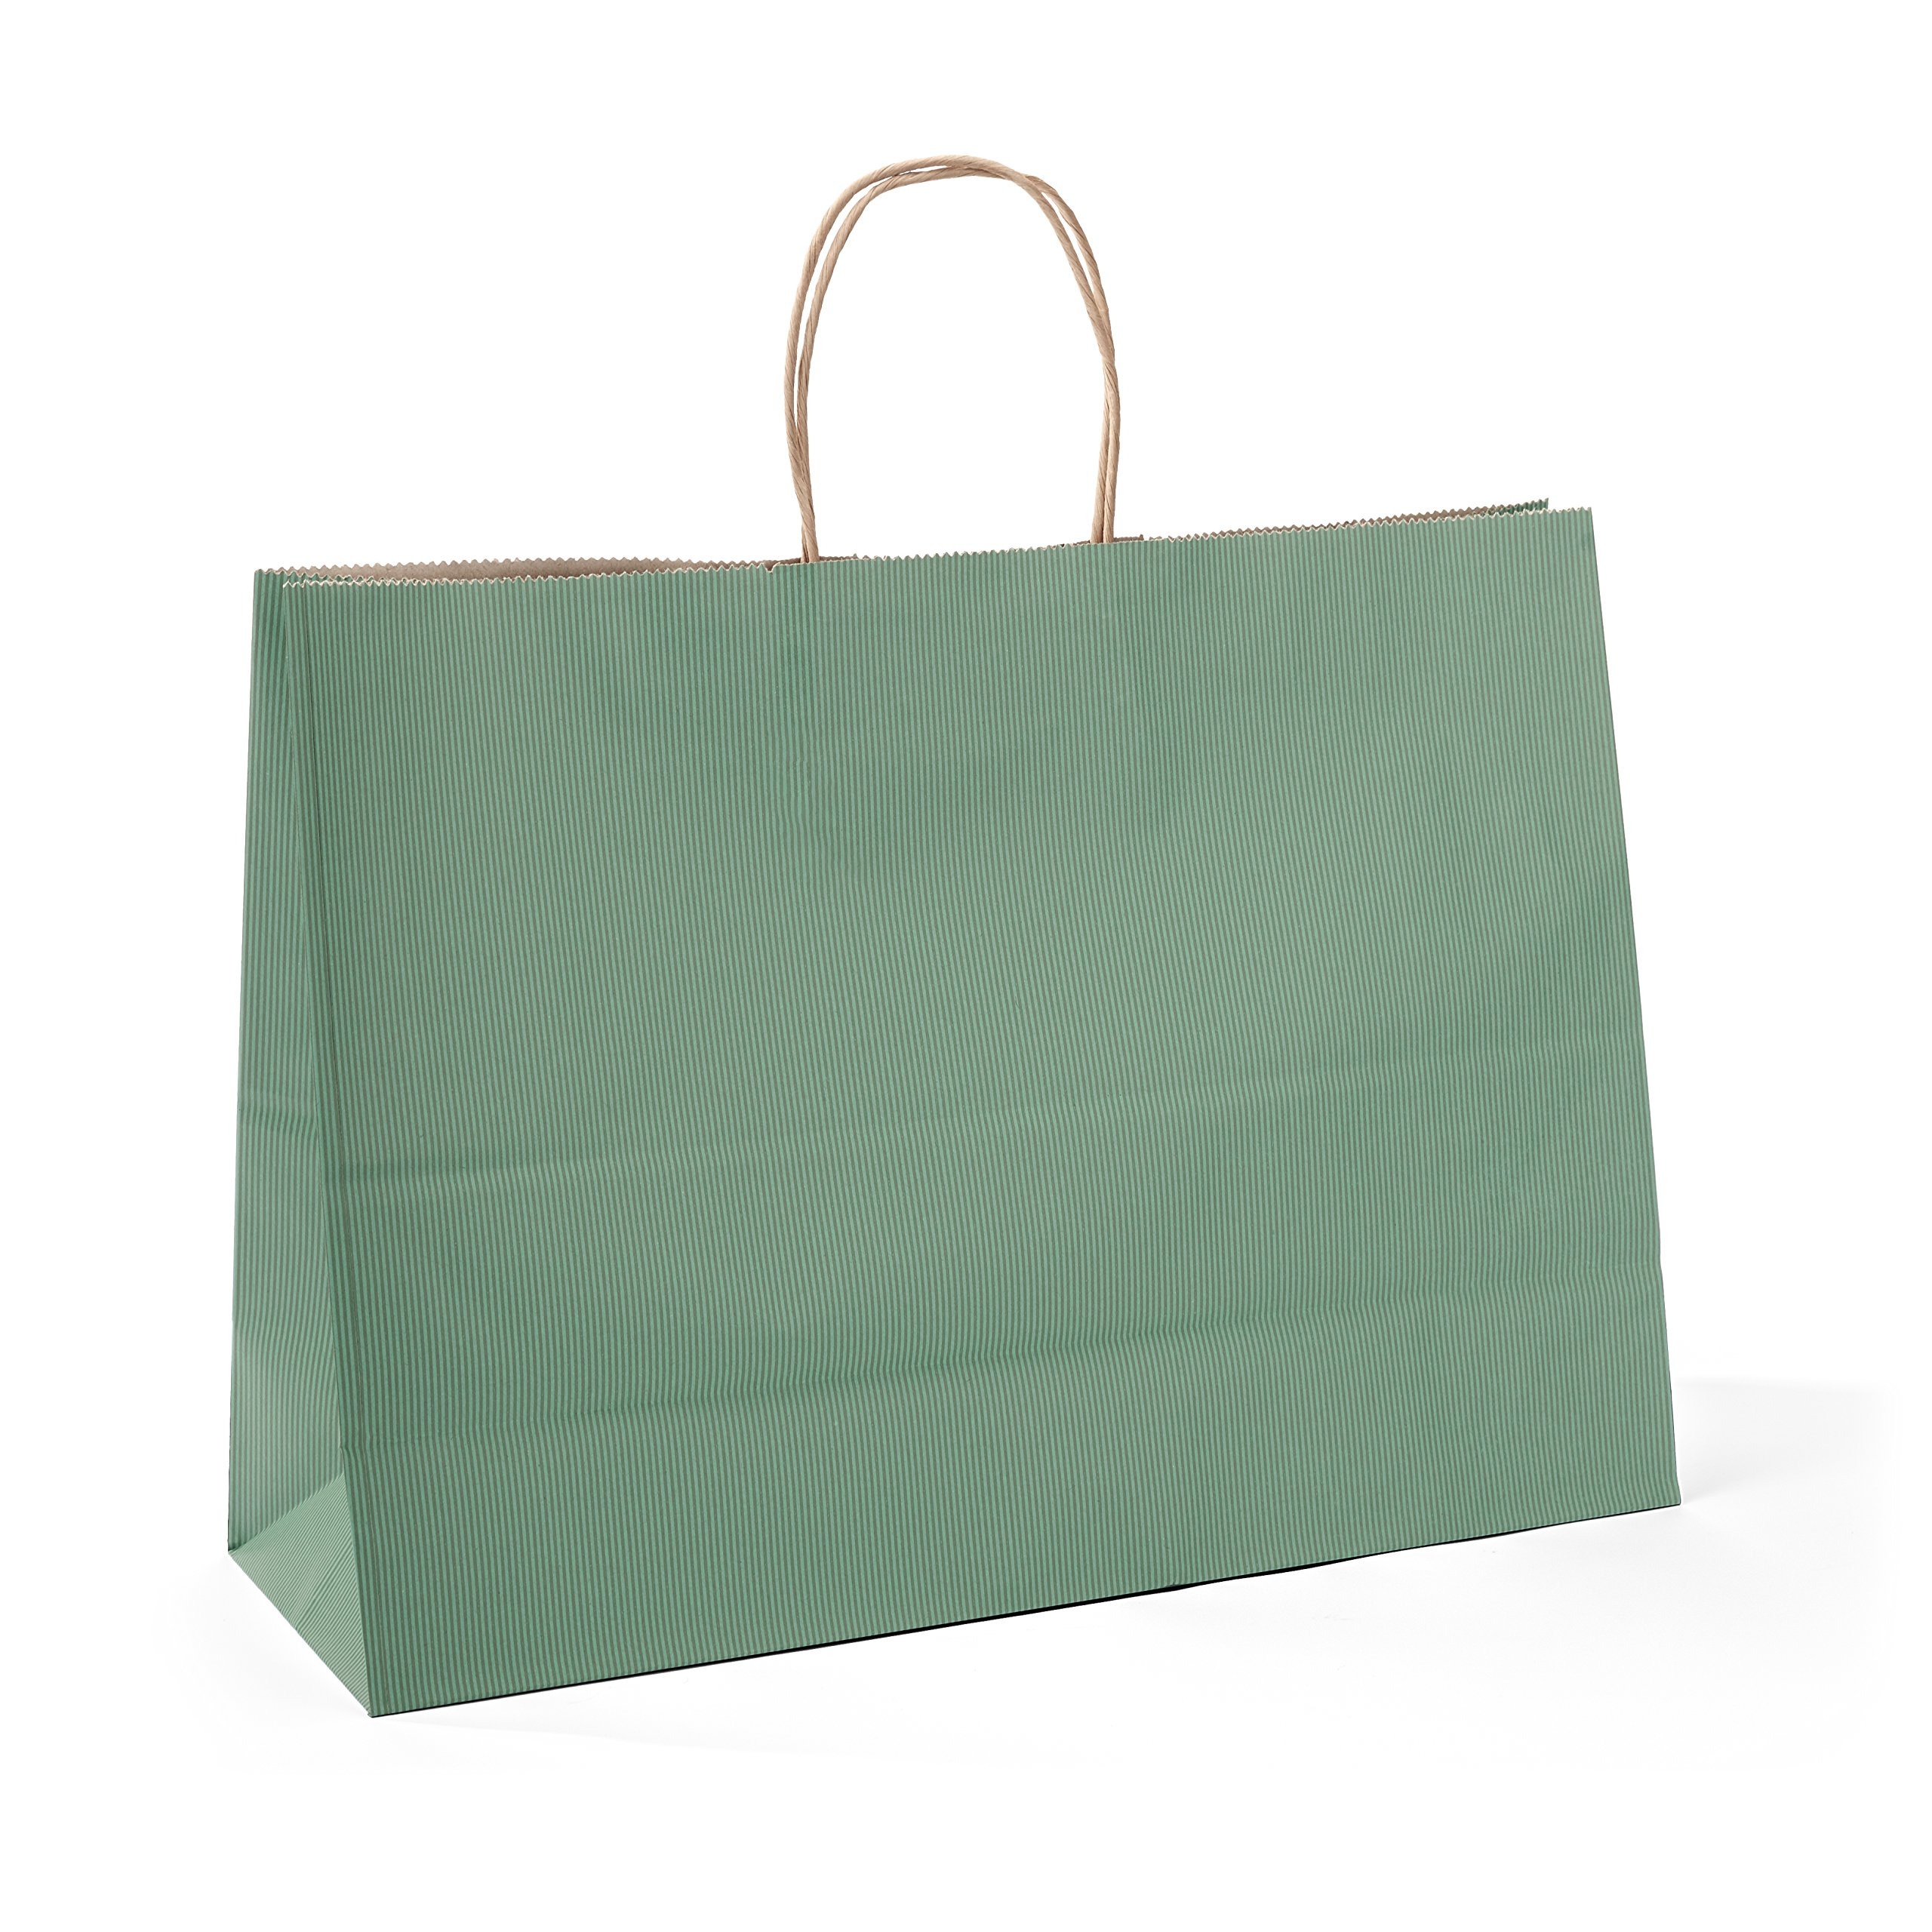 Halulu 50 Pcs 16x6x12inches Kraft Paper Bags,Handled, Gift, Party, Merchandise, Carry, Retail,Shopping Bags (green)